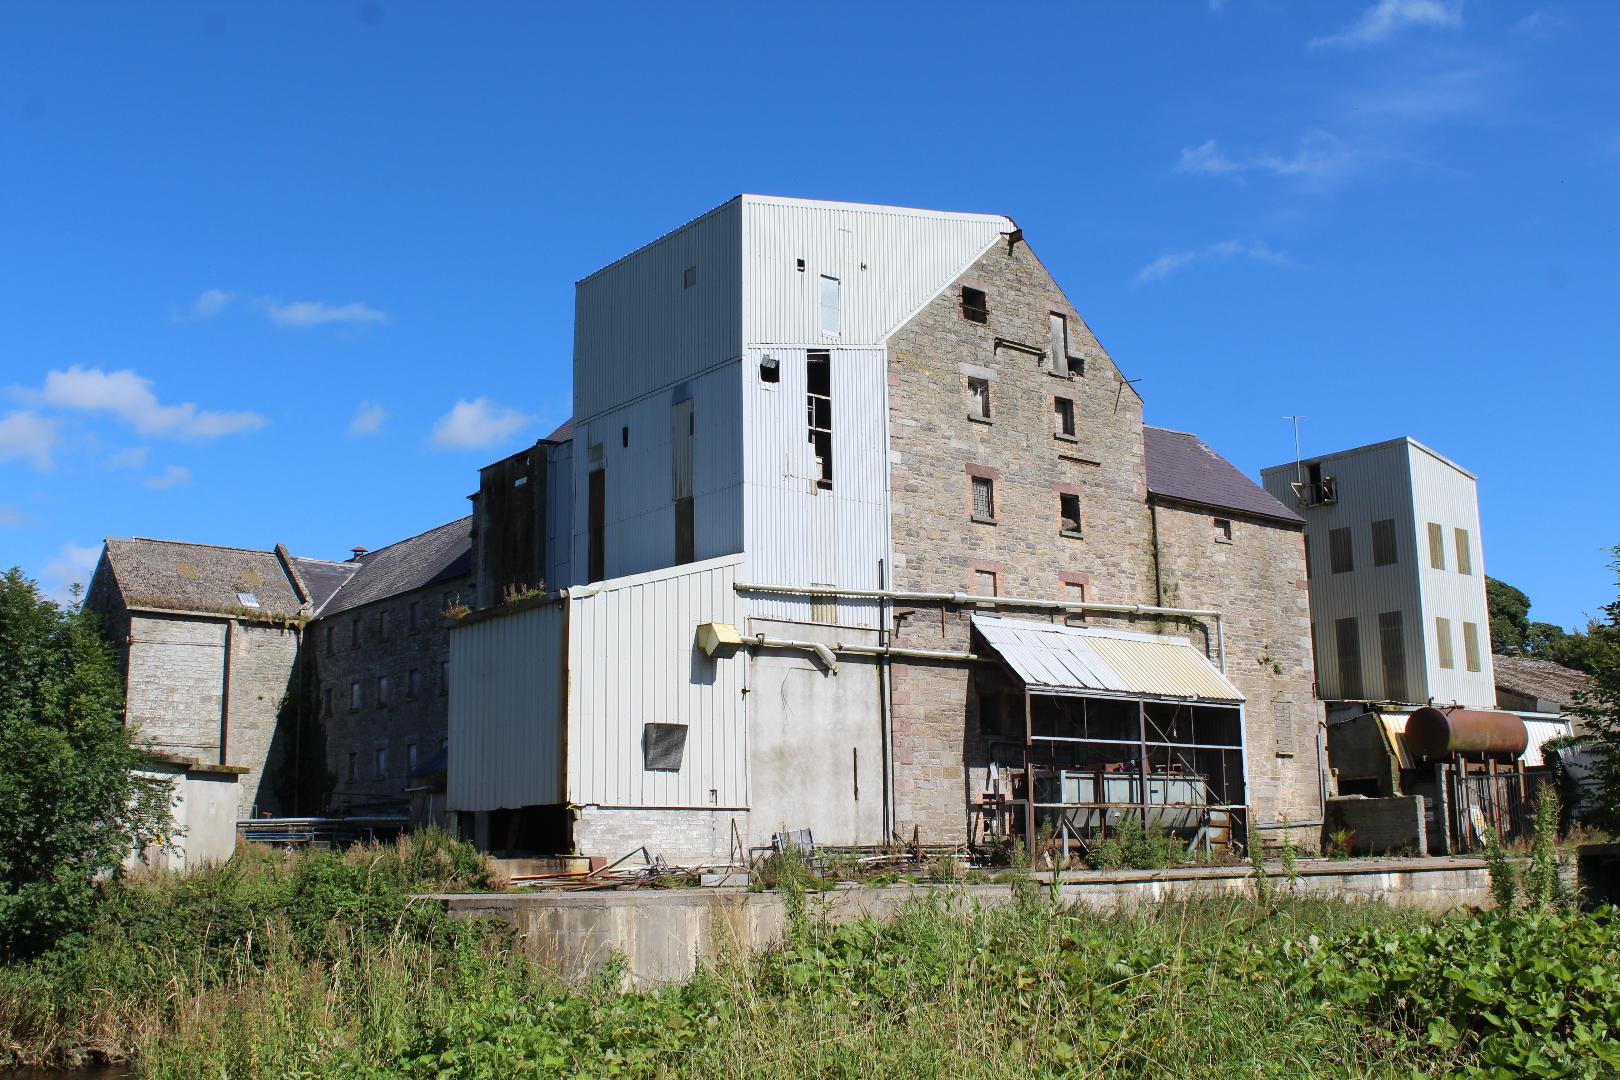 Photo of More information sought on Distillery